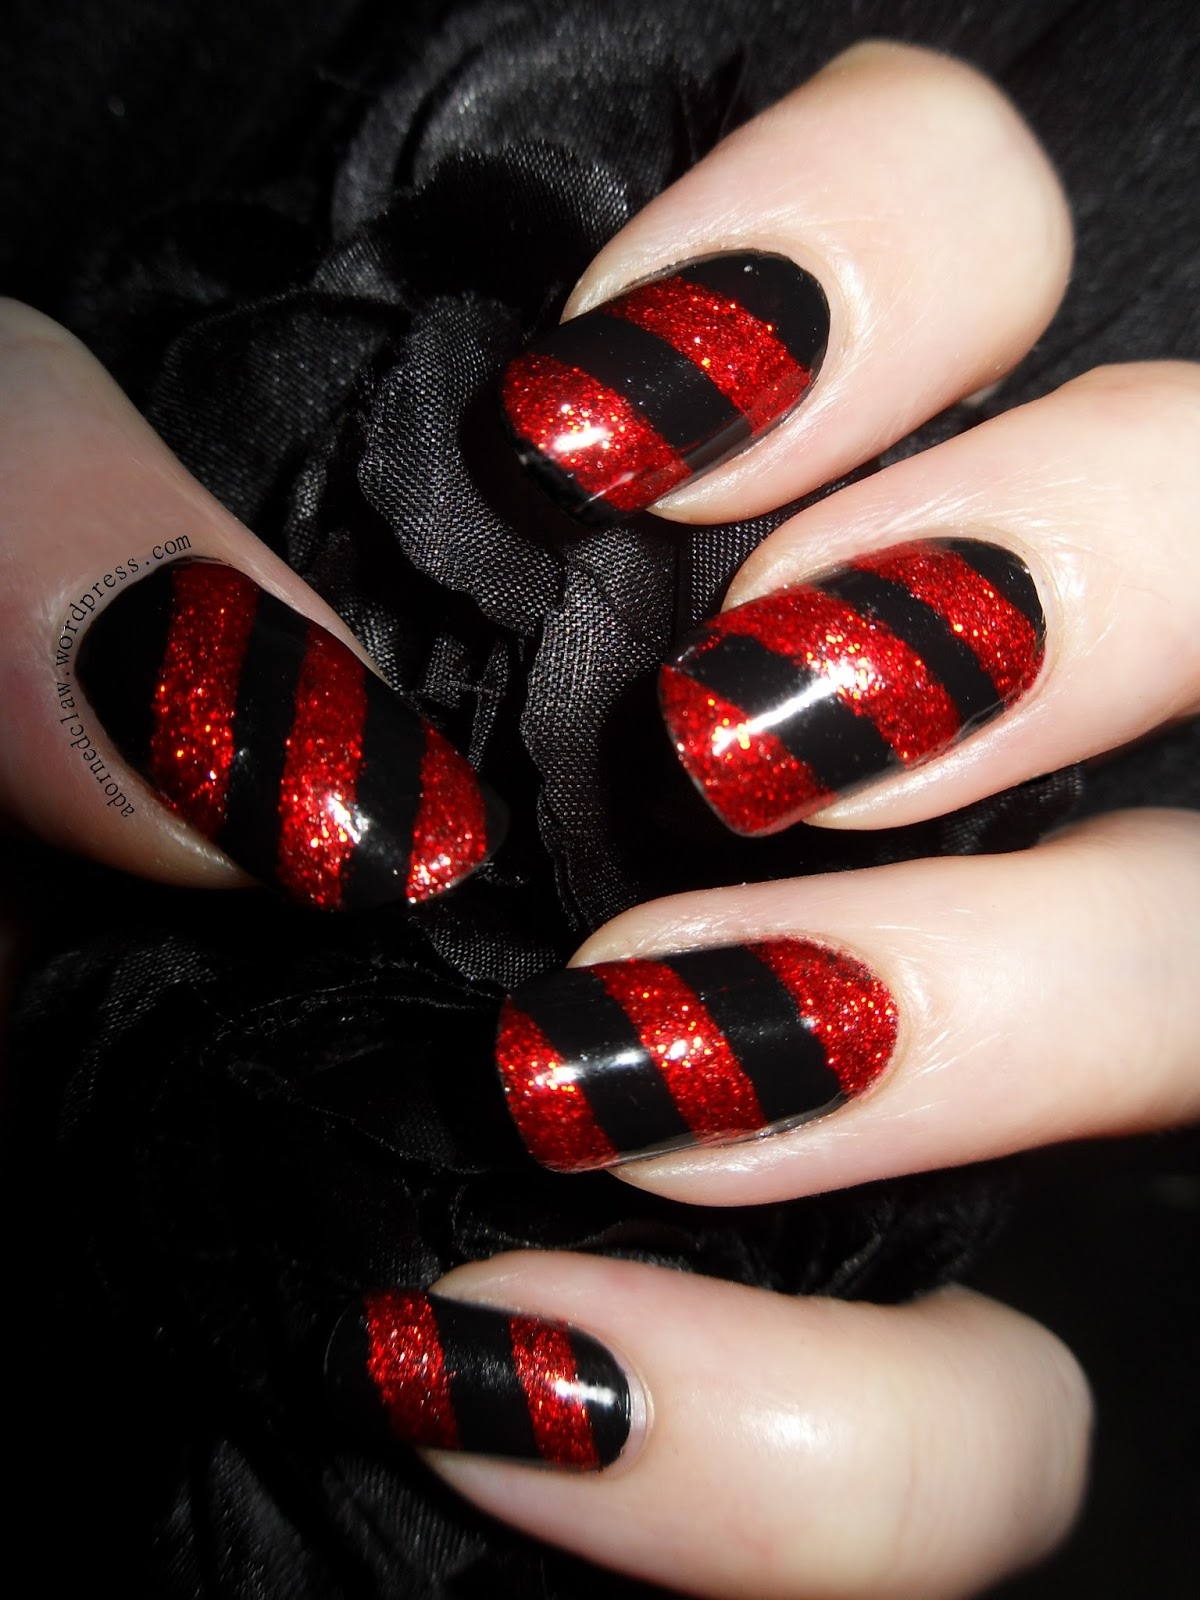 Red and black combination!